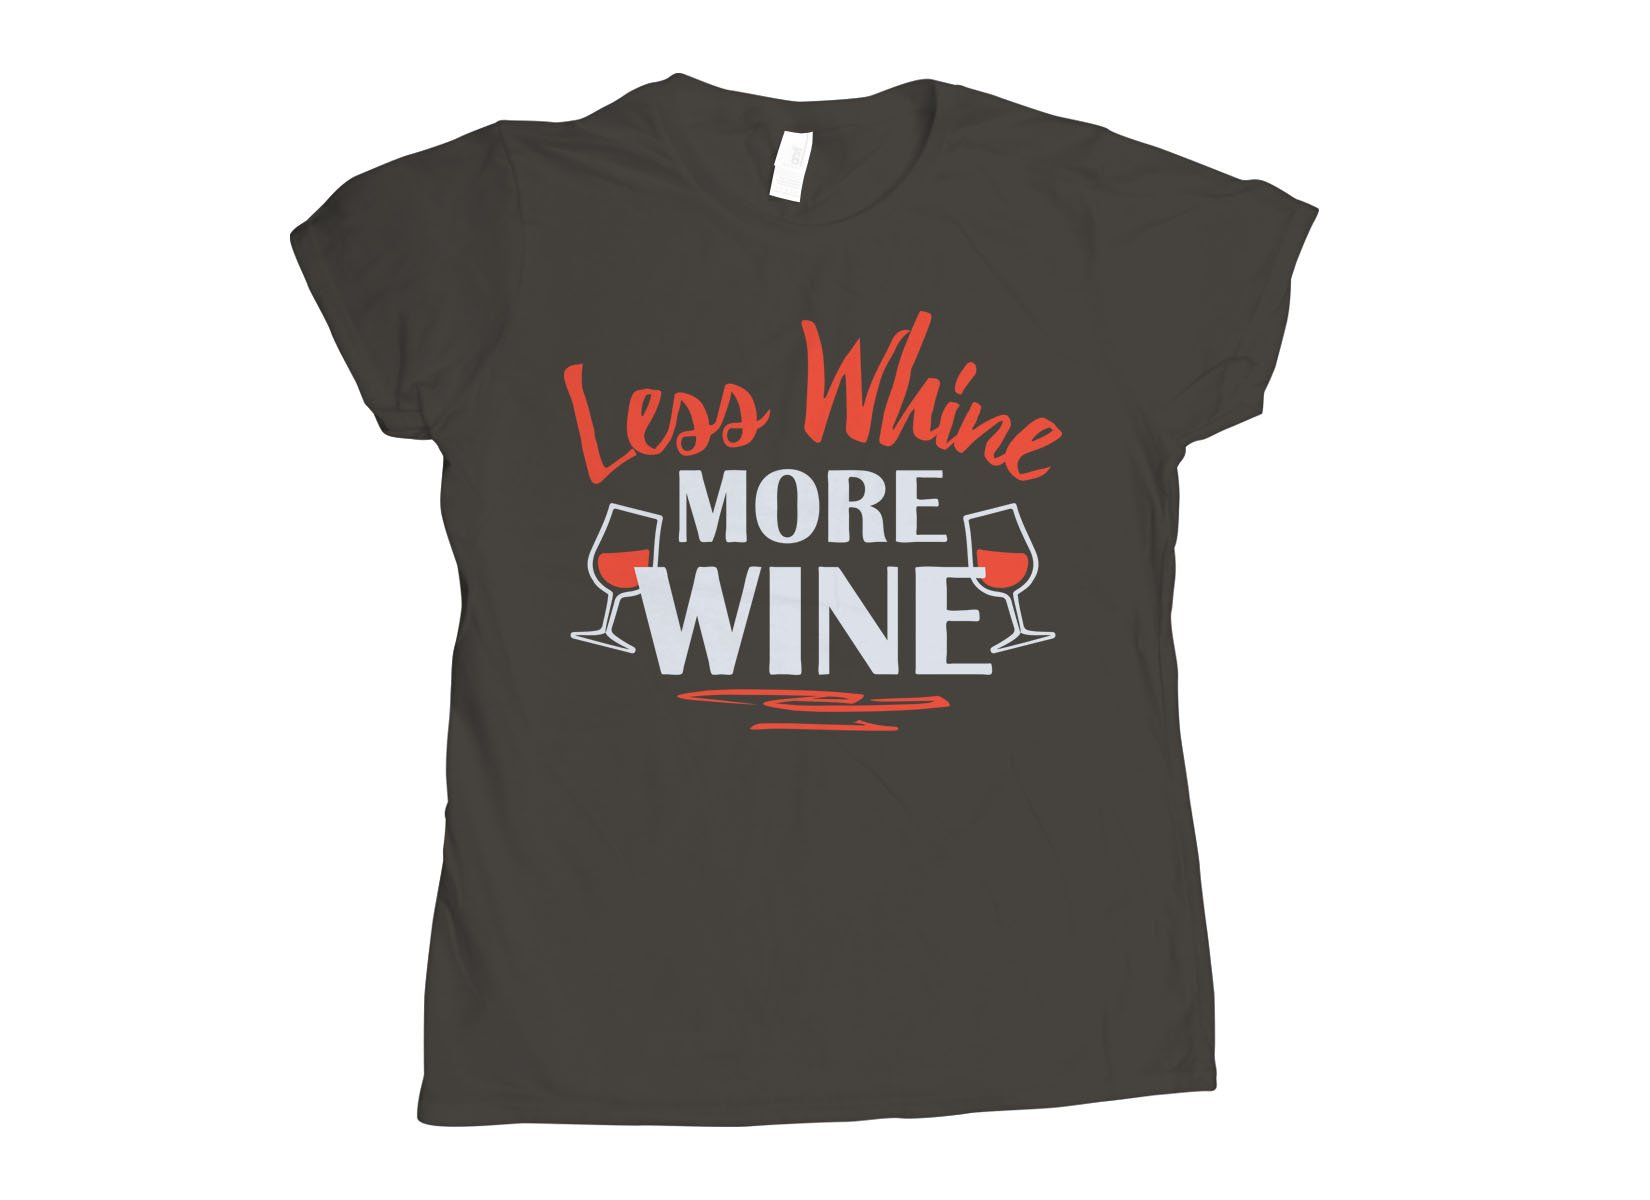 Less Whine More Wine on Womens T-Shirt